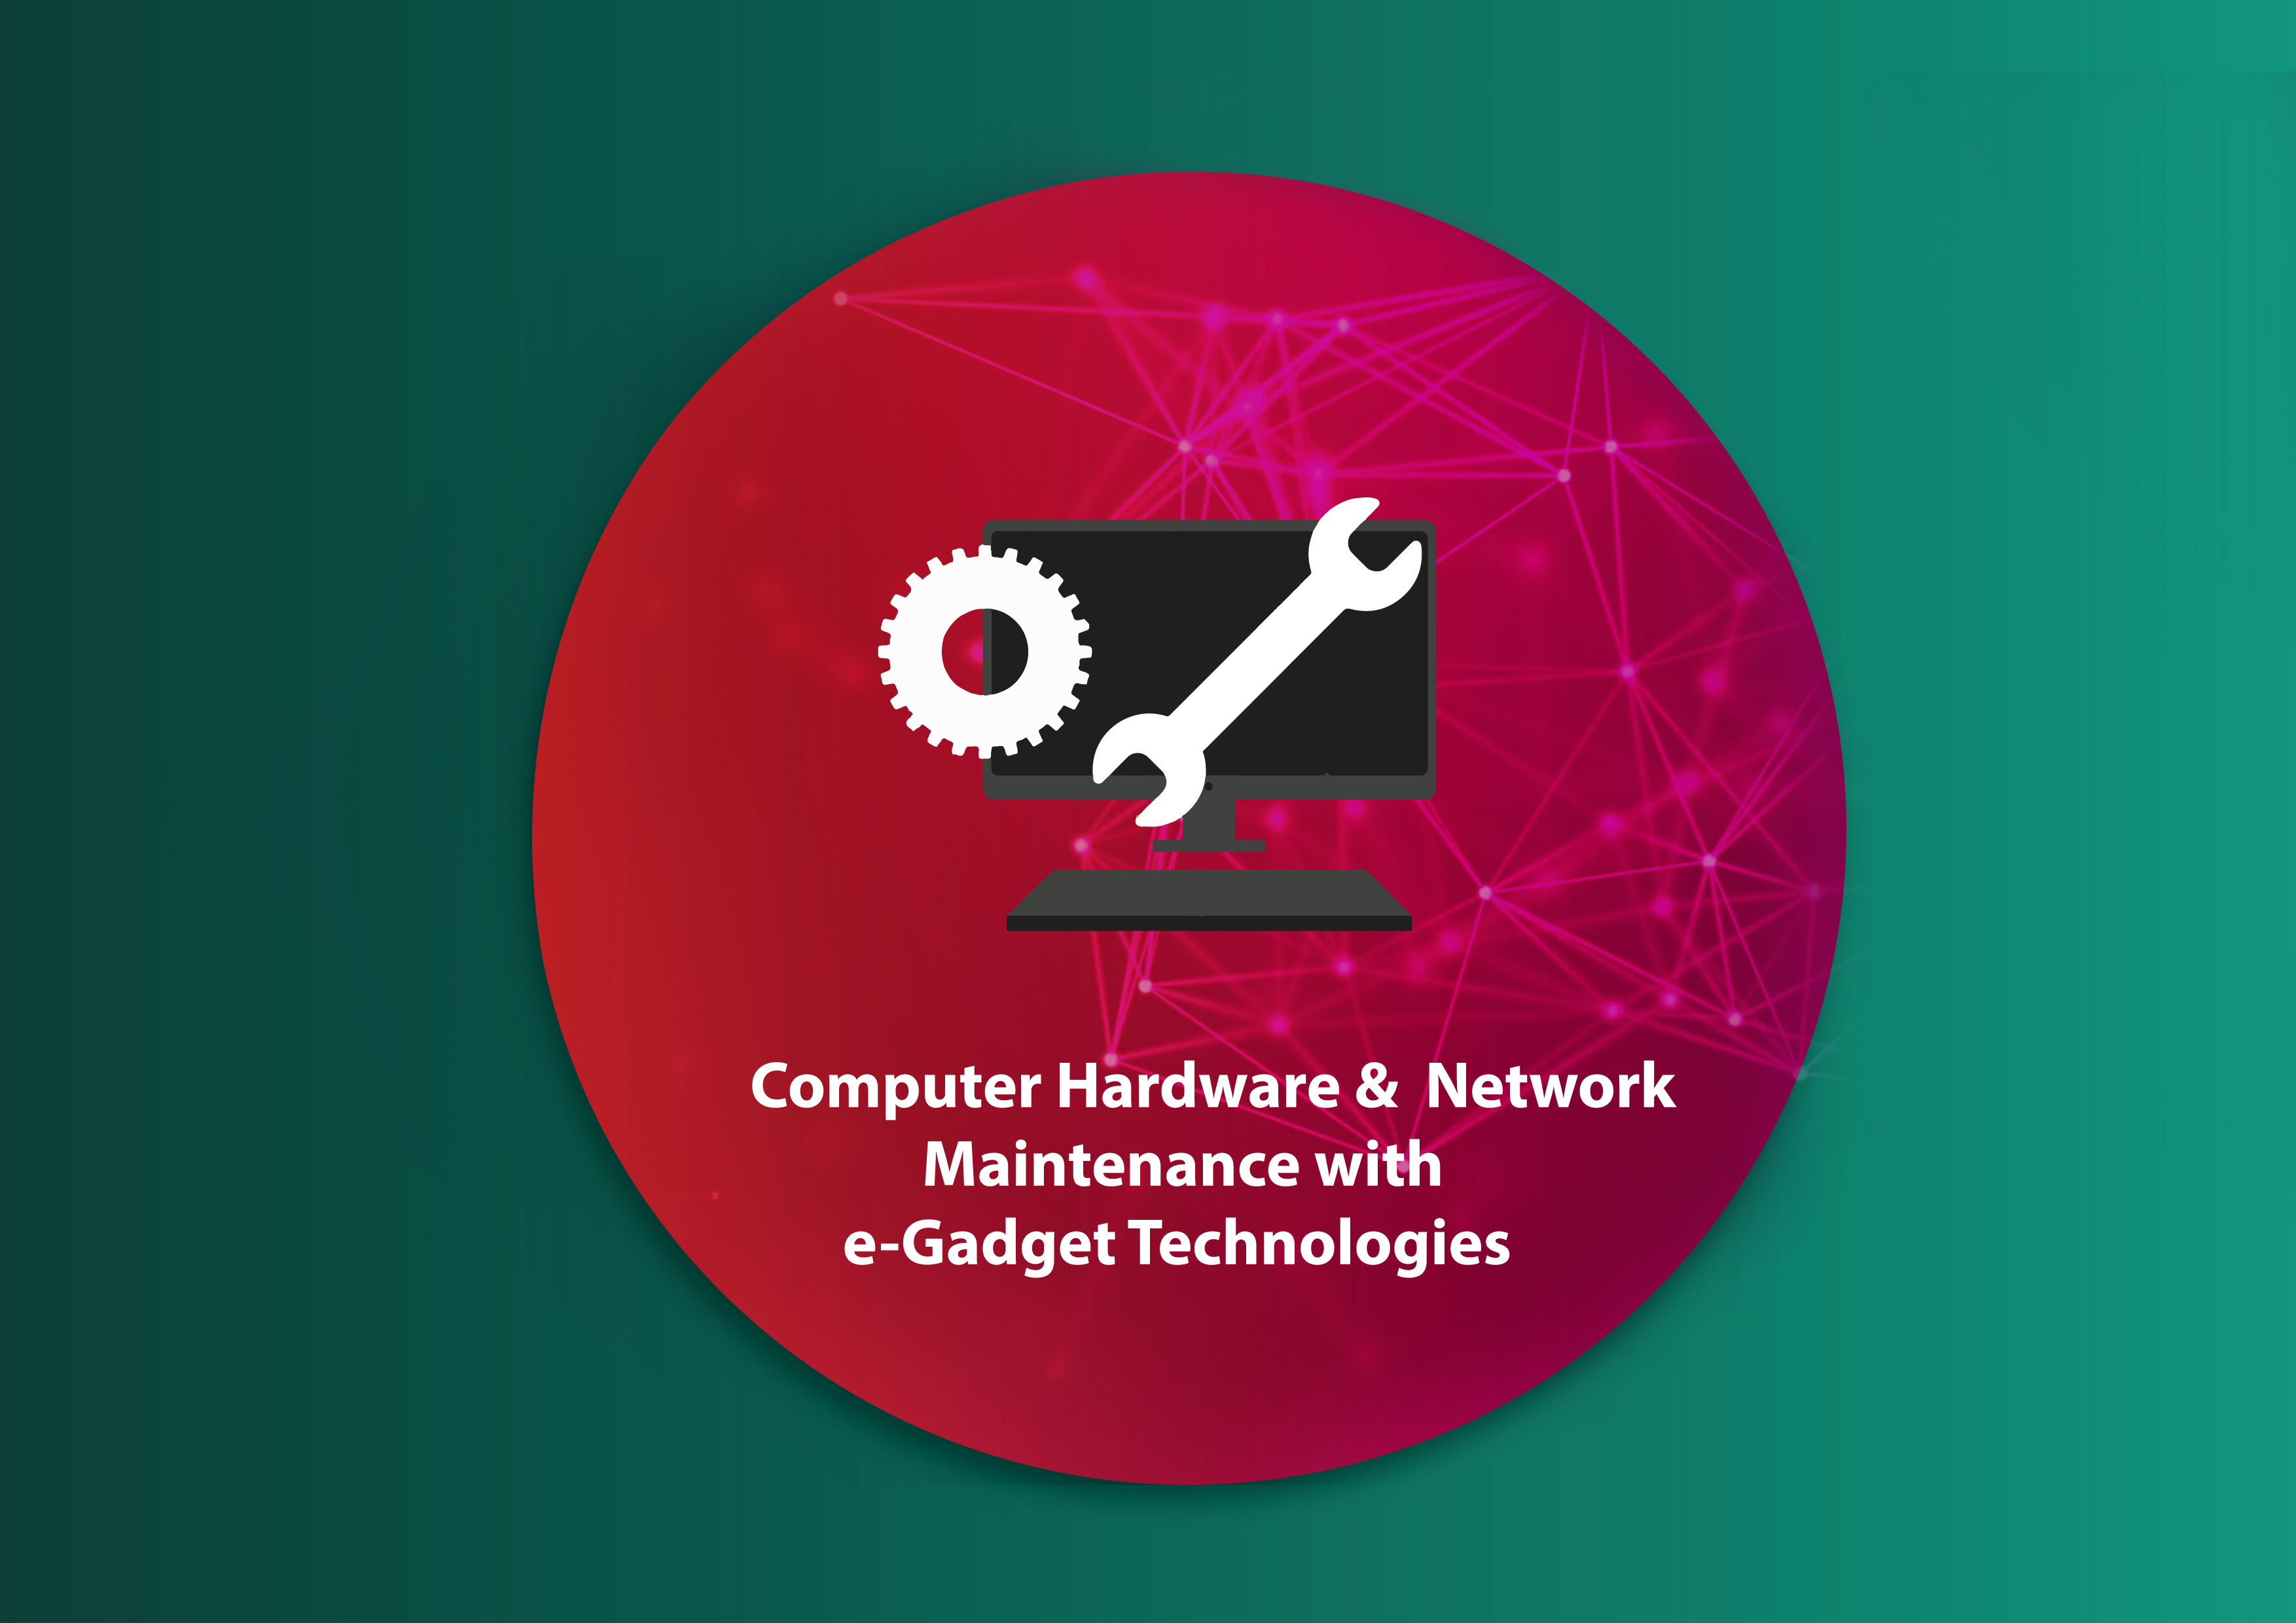 Diploma in Computer Hardware and Network Maintenance with e-Gadget Technologies